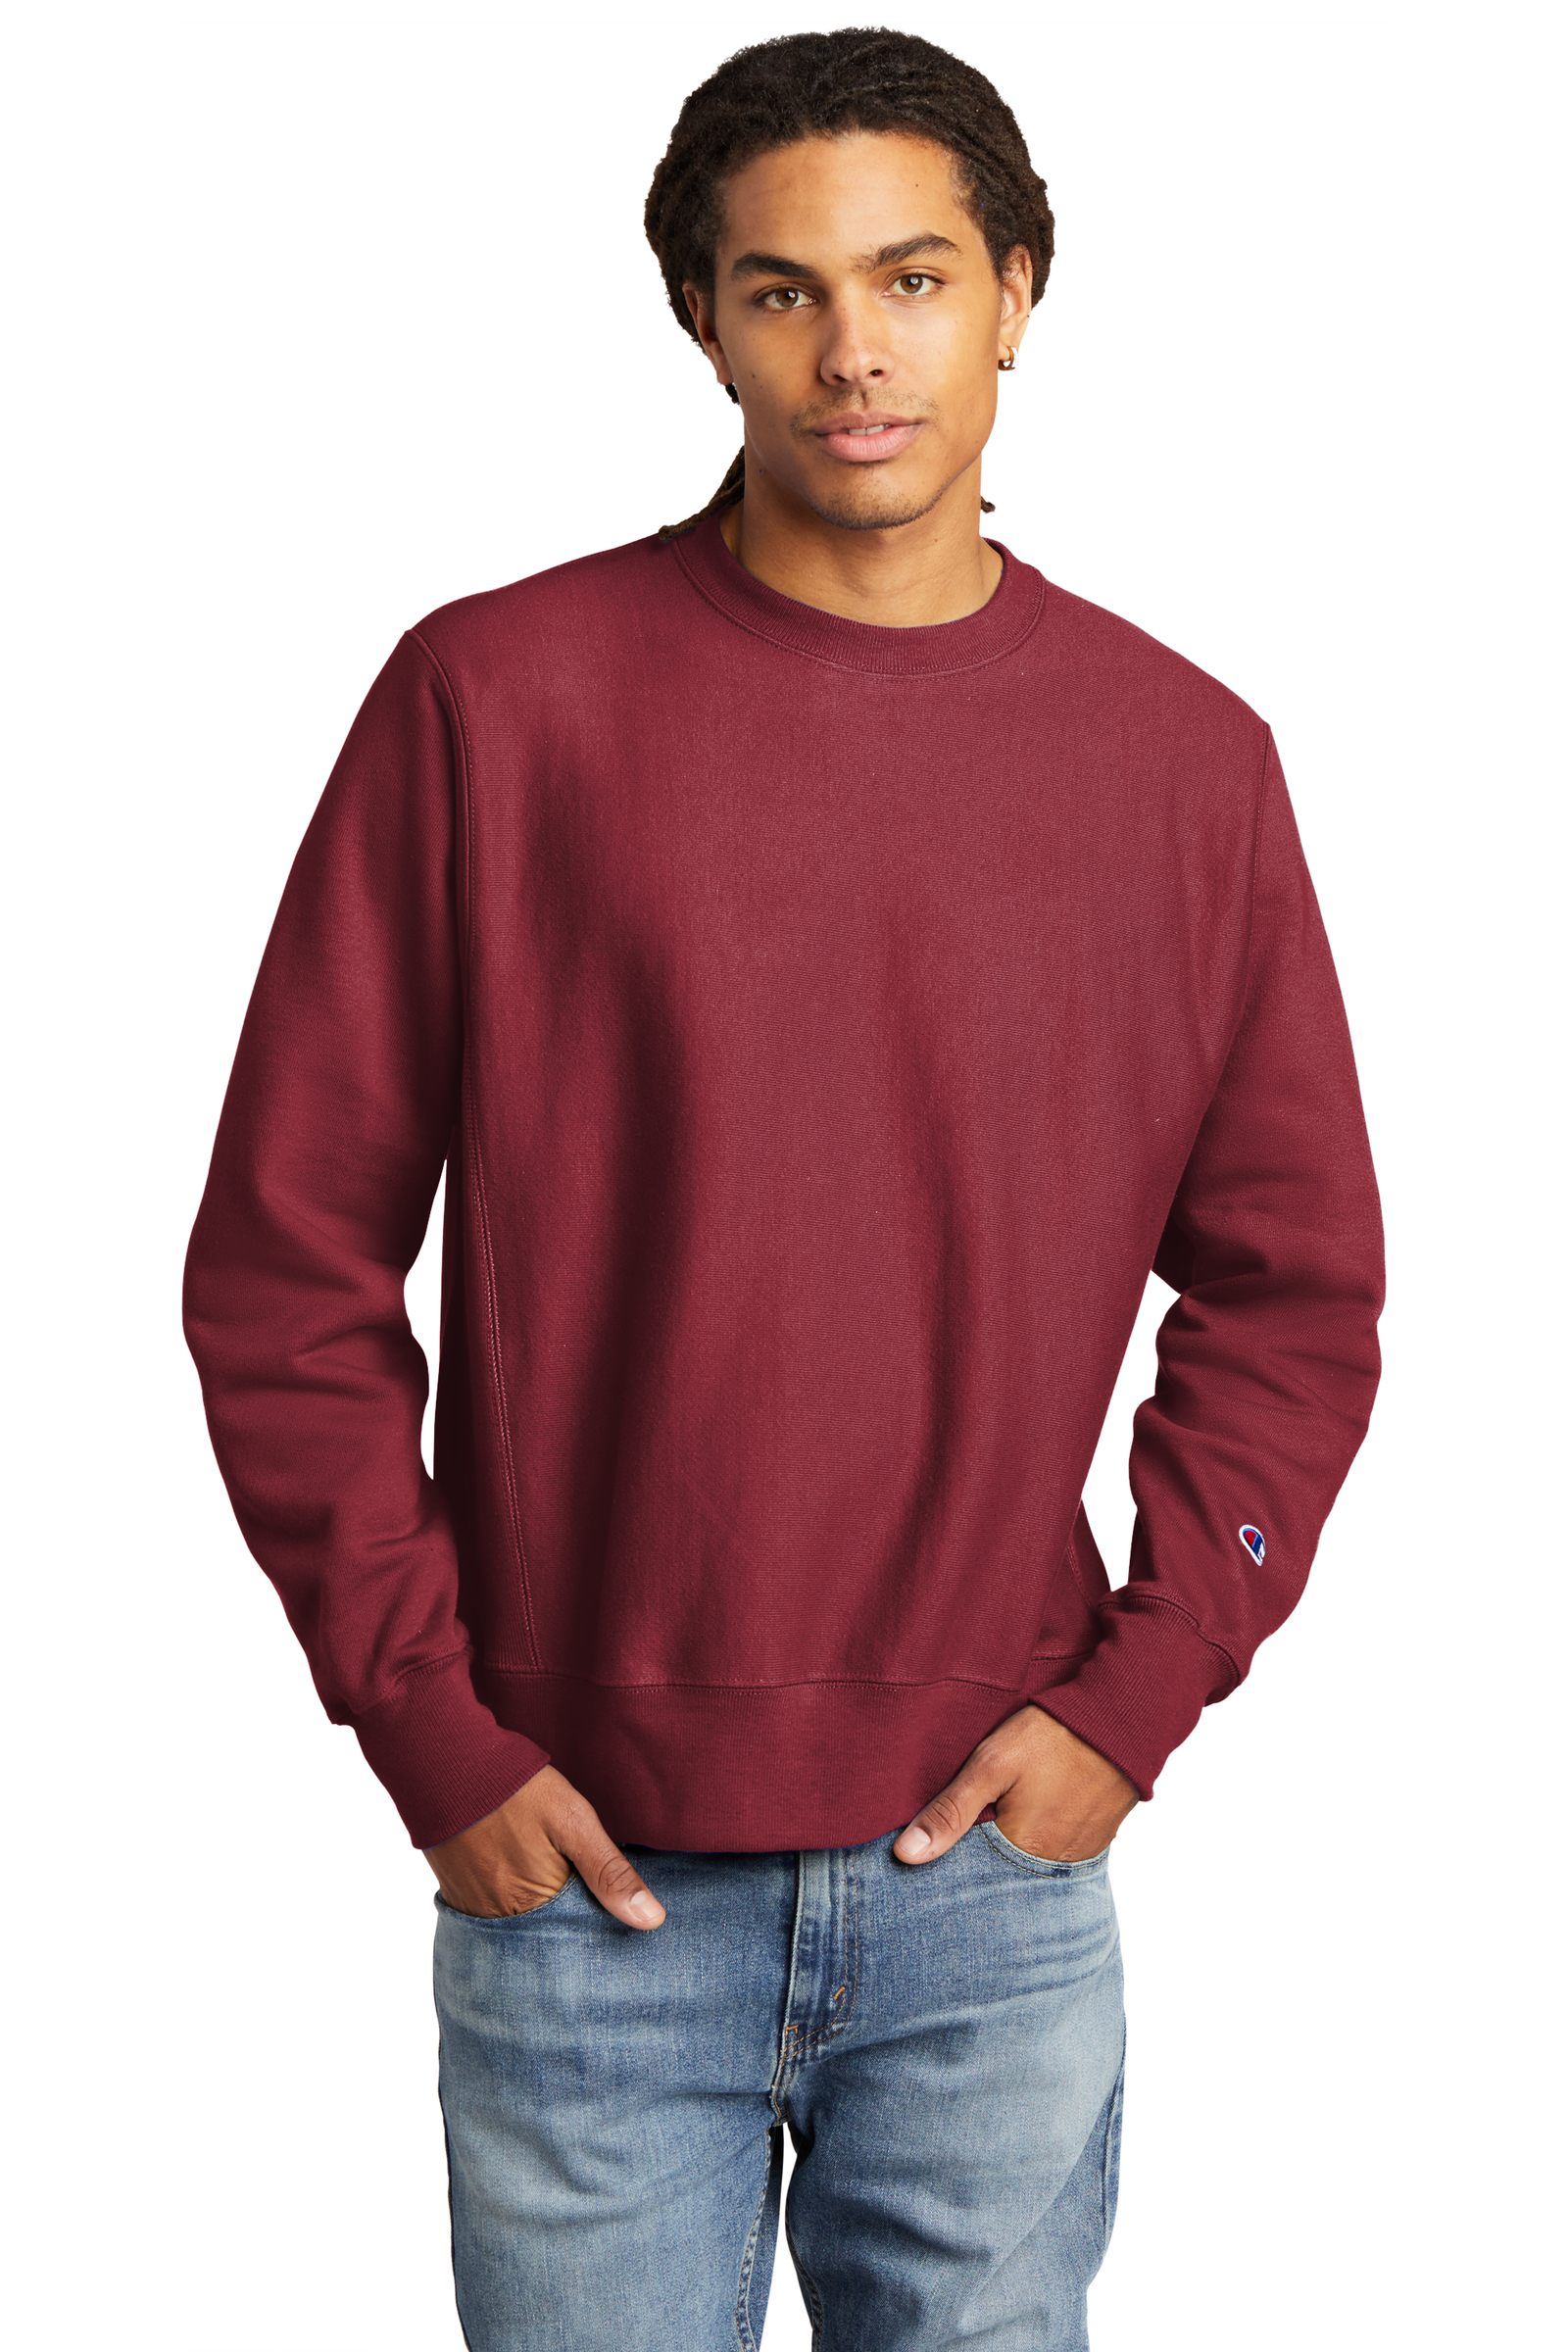 Champion Embroidered Men's Reverse Weave Crewneck Sweatshirt